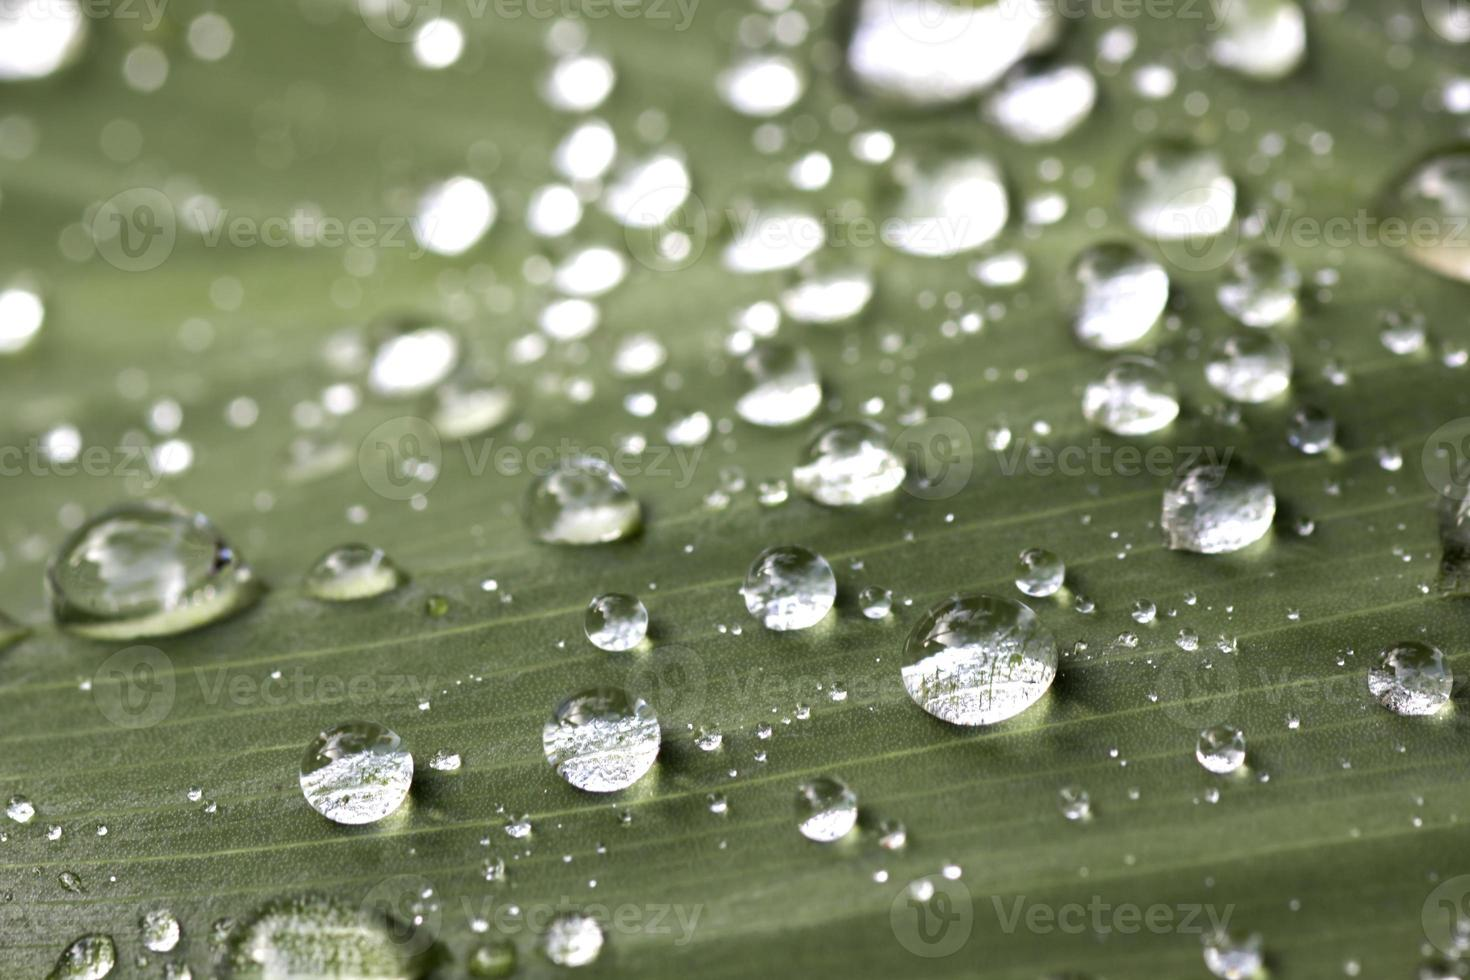 An image of grass with rain drops photo